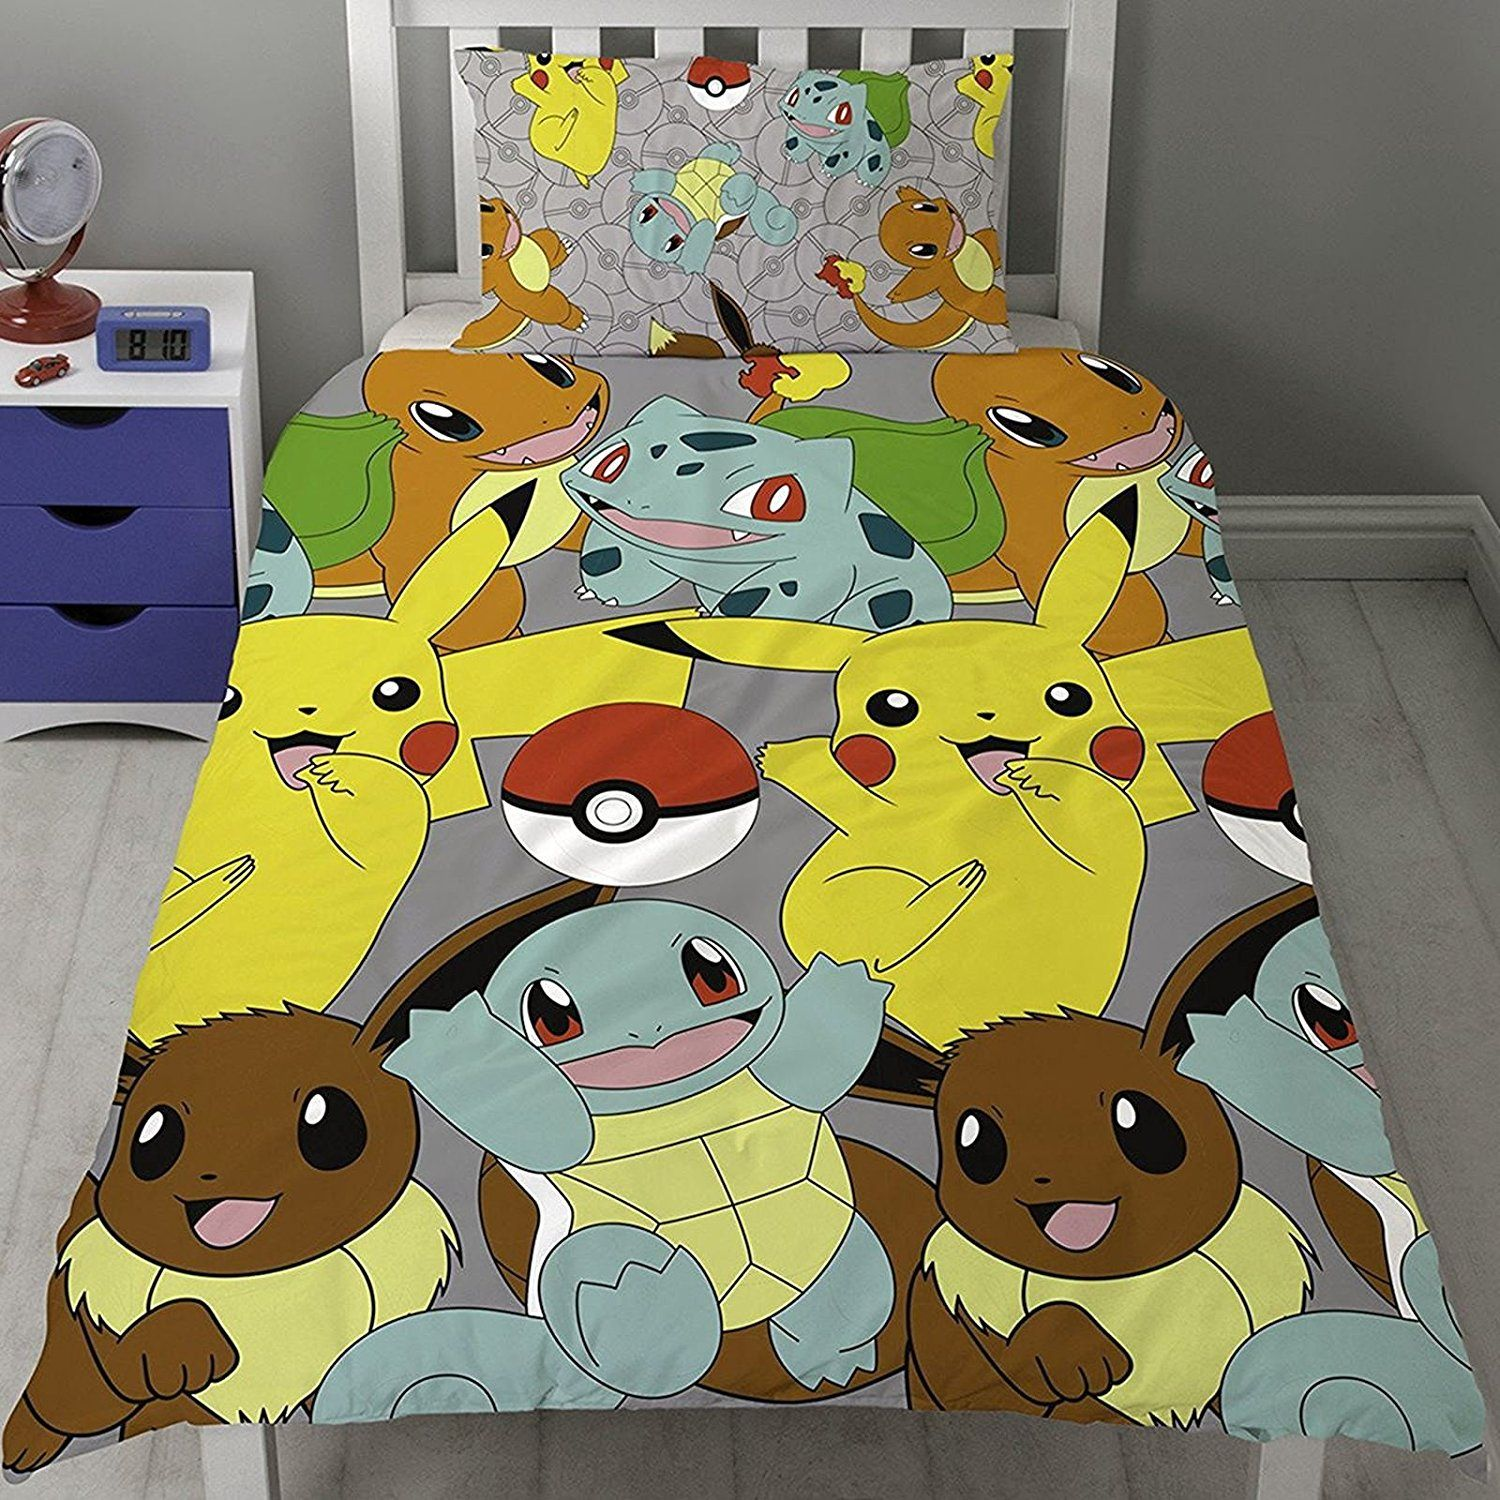 SINGLE BED POKEMON CATCH DUVET COVER PIKACHU SQUIRTLE CHARMANDER GREY YELLOW RED